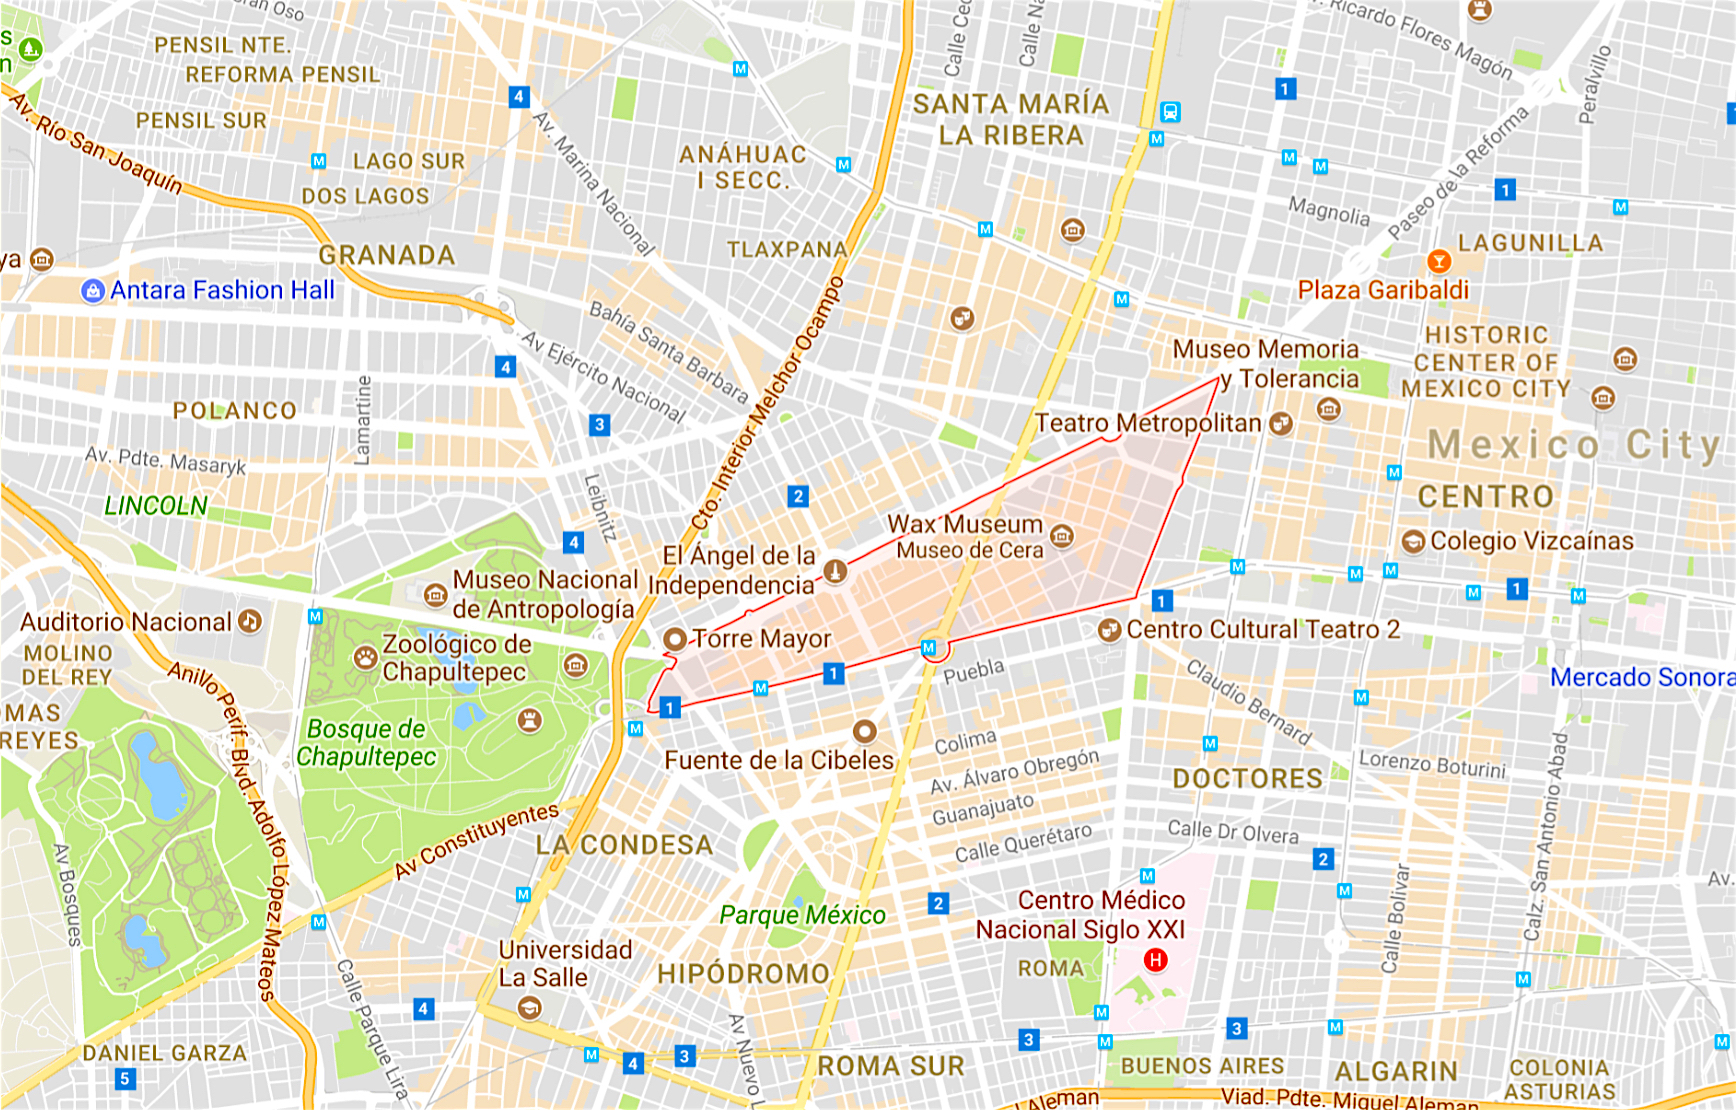 Iconic 'Zona Rosa', Mexico City, Mexico, Renovated with ... on century iii mall map, loose park map, saint louis galleria map, first colony mall map, palisades center map, destiny usa map, lycoming mall map, jefferson pointe map, ed dames safe sanctuary map, patrick henry mall map, lee's summit map, rivertown crossings map, the greene map, convention center map, westgate mall map, york galleria map, monroeville mall map, chesterfield towne center map, power & light district map, victoria mall map,